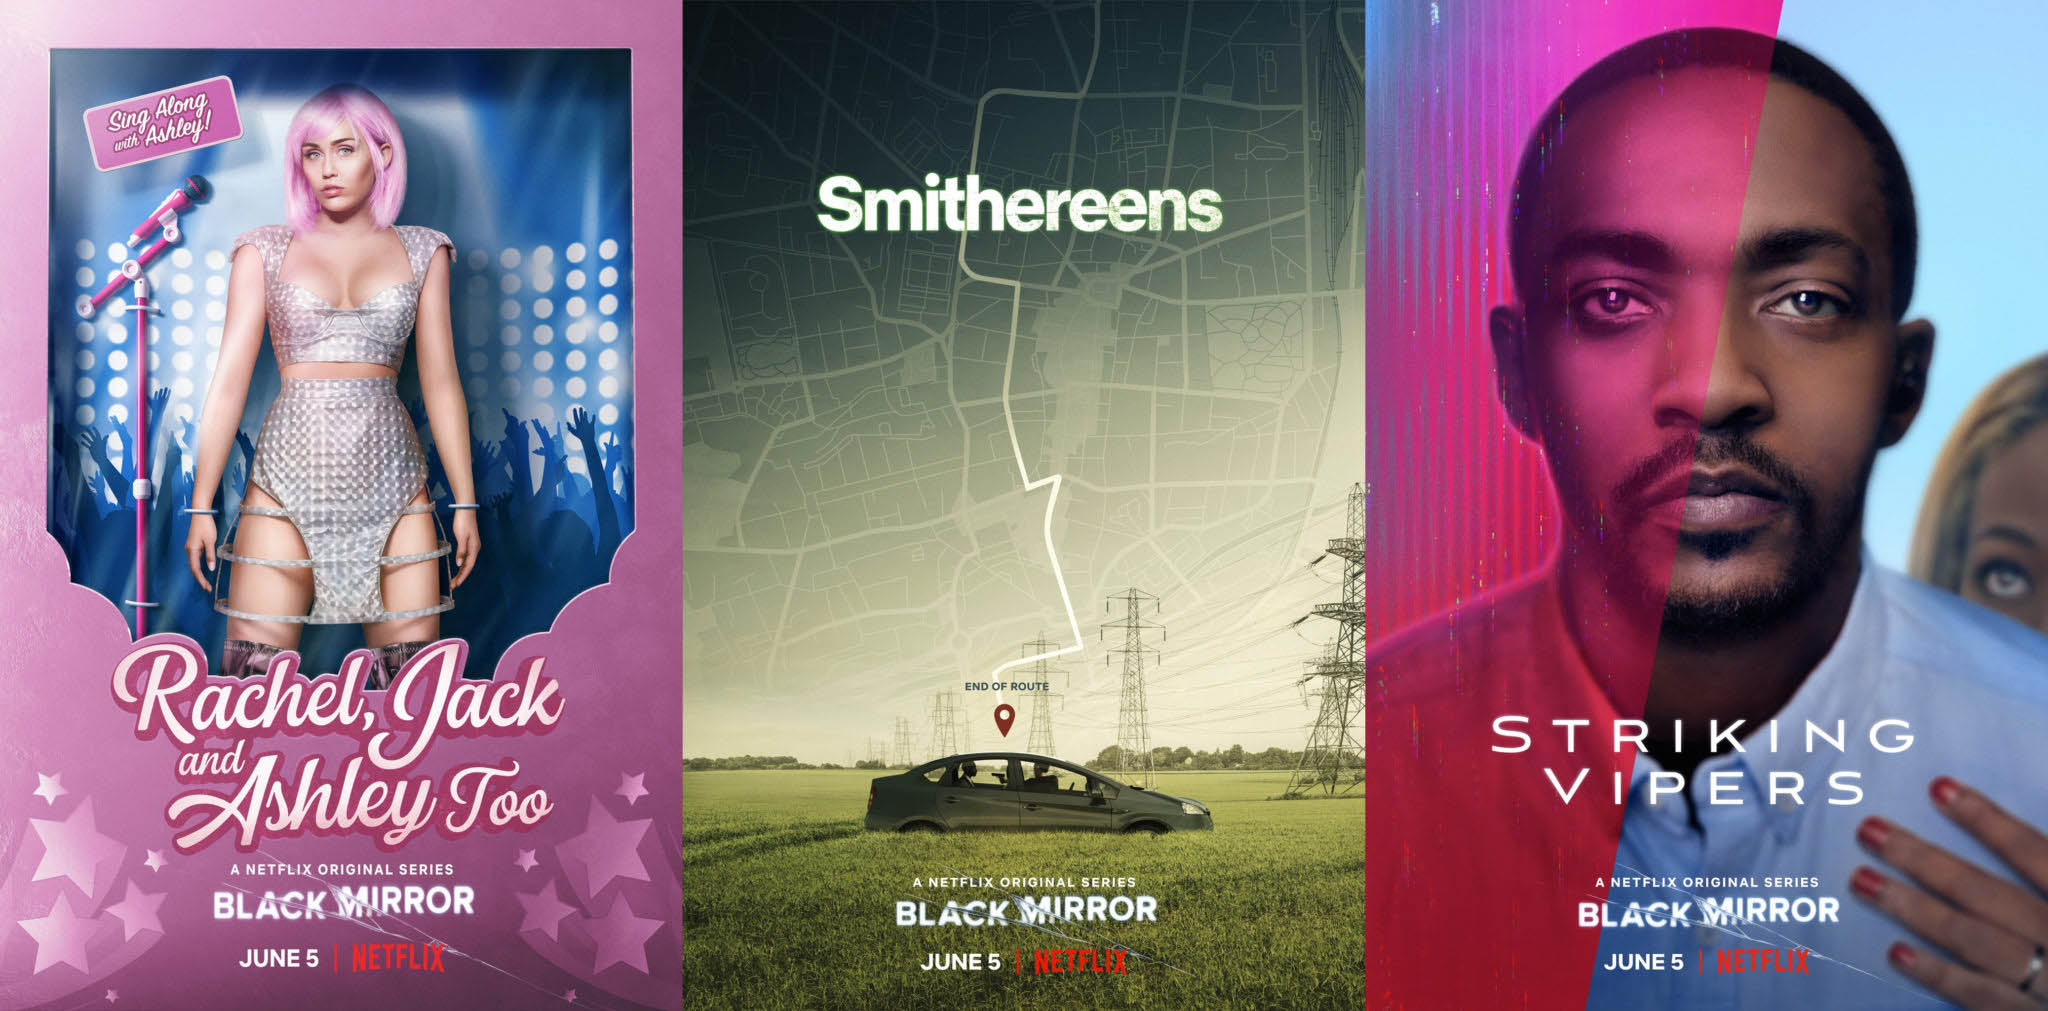 Black Mirror Season 5 Netflix 2019. This sci-fi anthology series explores a twisted, high-tech near-future where humanity's greatest innovations and darkest instincts collide.